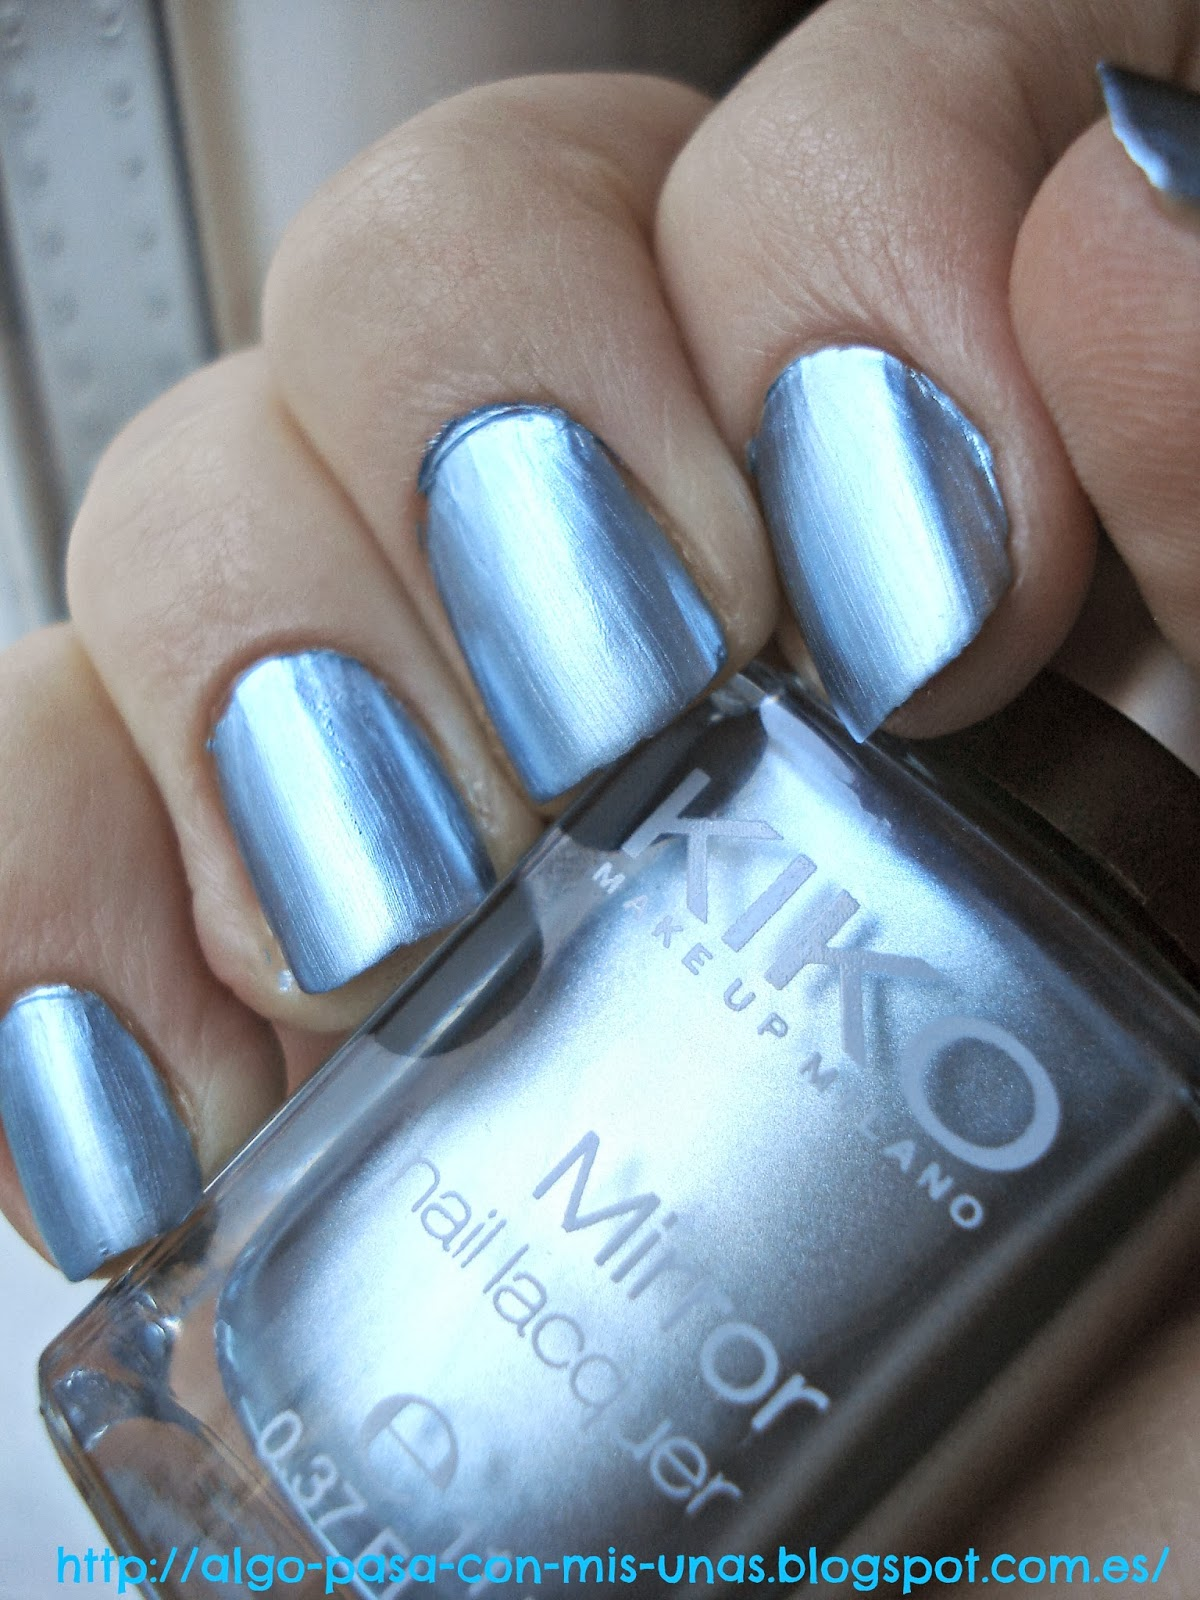 Algo pasa con mis u as swatch esmaltes kiko mirror collection 624 blue sky - Pintaunas efecto espejo kiko ...